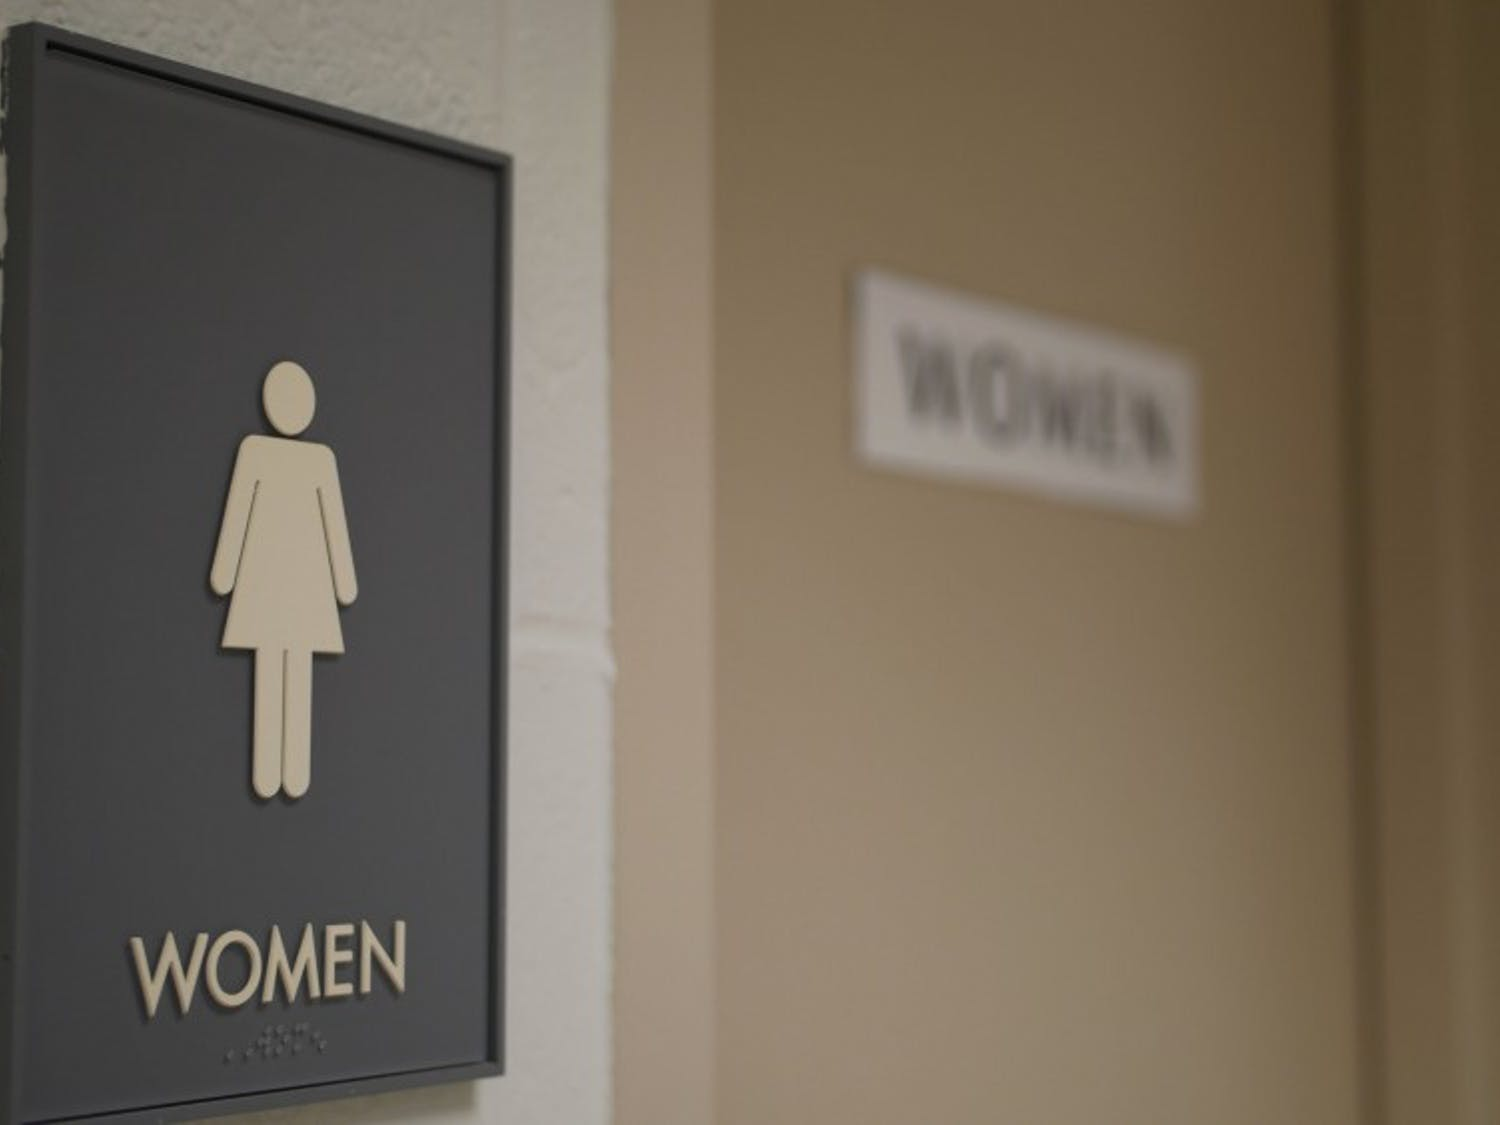 With over 16,500 female faculty, staff and students, UB still lacks proper accessibility to feminine products. A SUNY resolution was passed this October to provide students with free menstrual products in all on-campus restrooms.